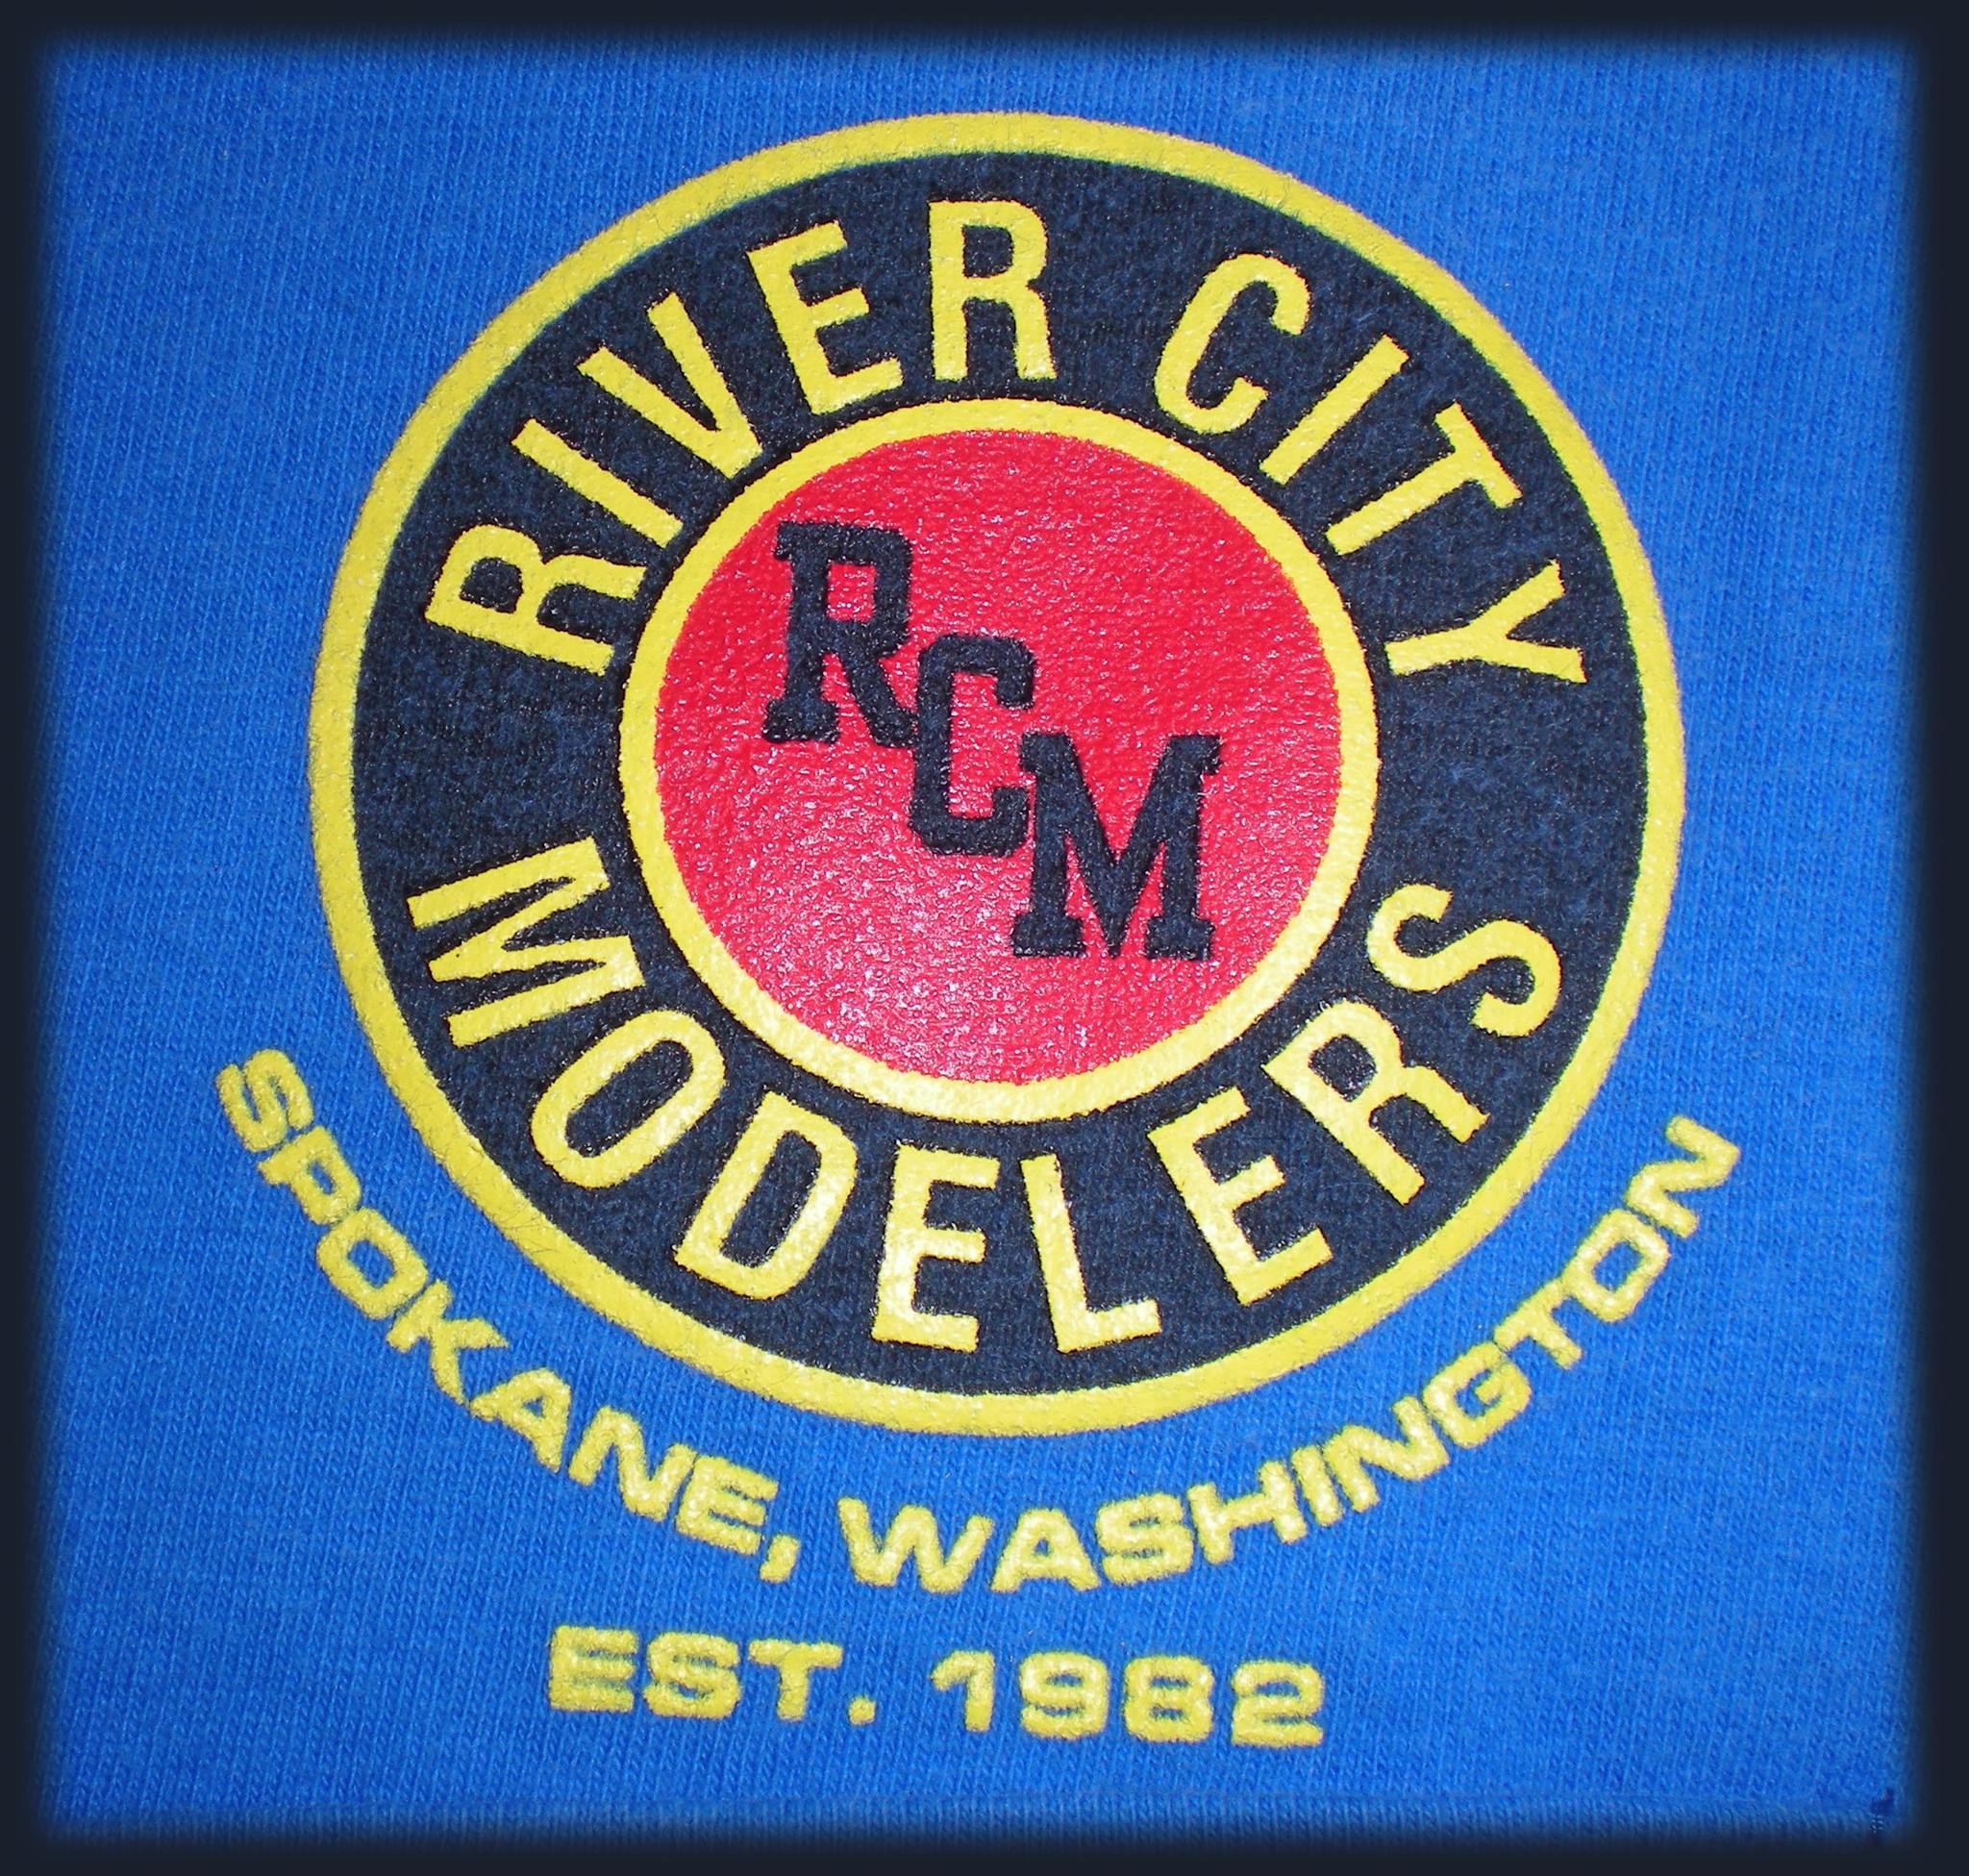 GNRHS at the River City Modelers Open House